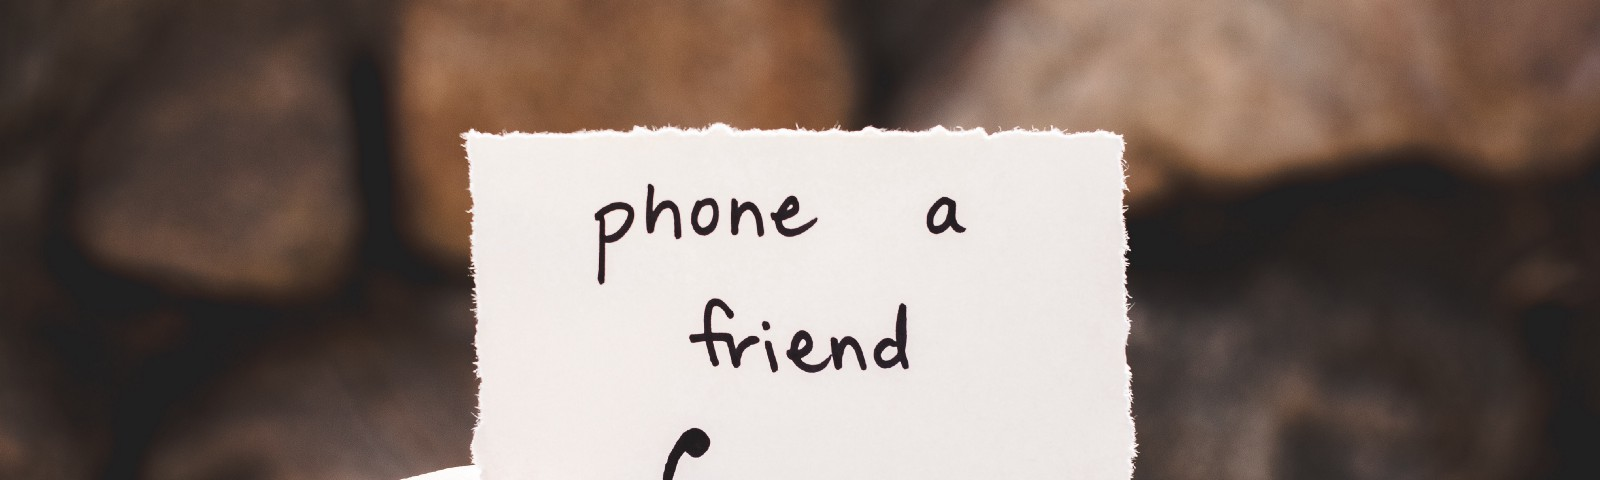 "A hand holding a piece of paper with ""phone a friend"" written on it and a symbol of a phone."